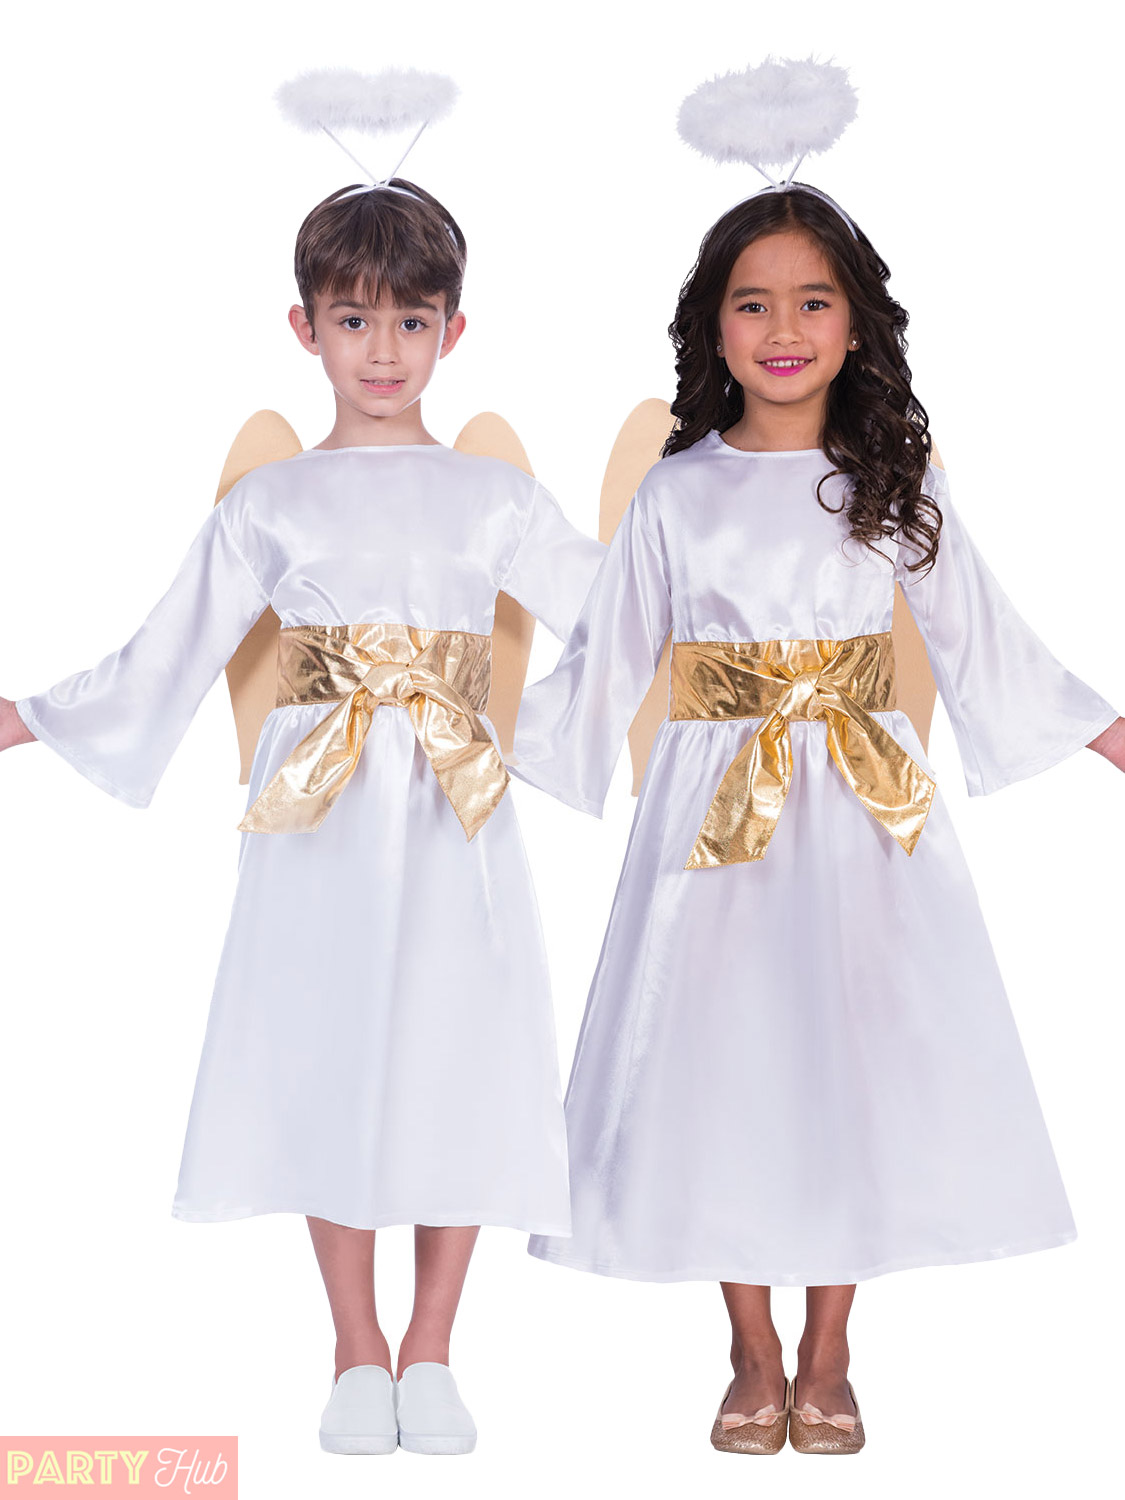 Details about Angel Gabriel Costume Kids Nativity Play Fancy Dress  Christmas Unisex Boys Girls